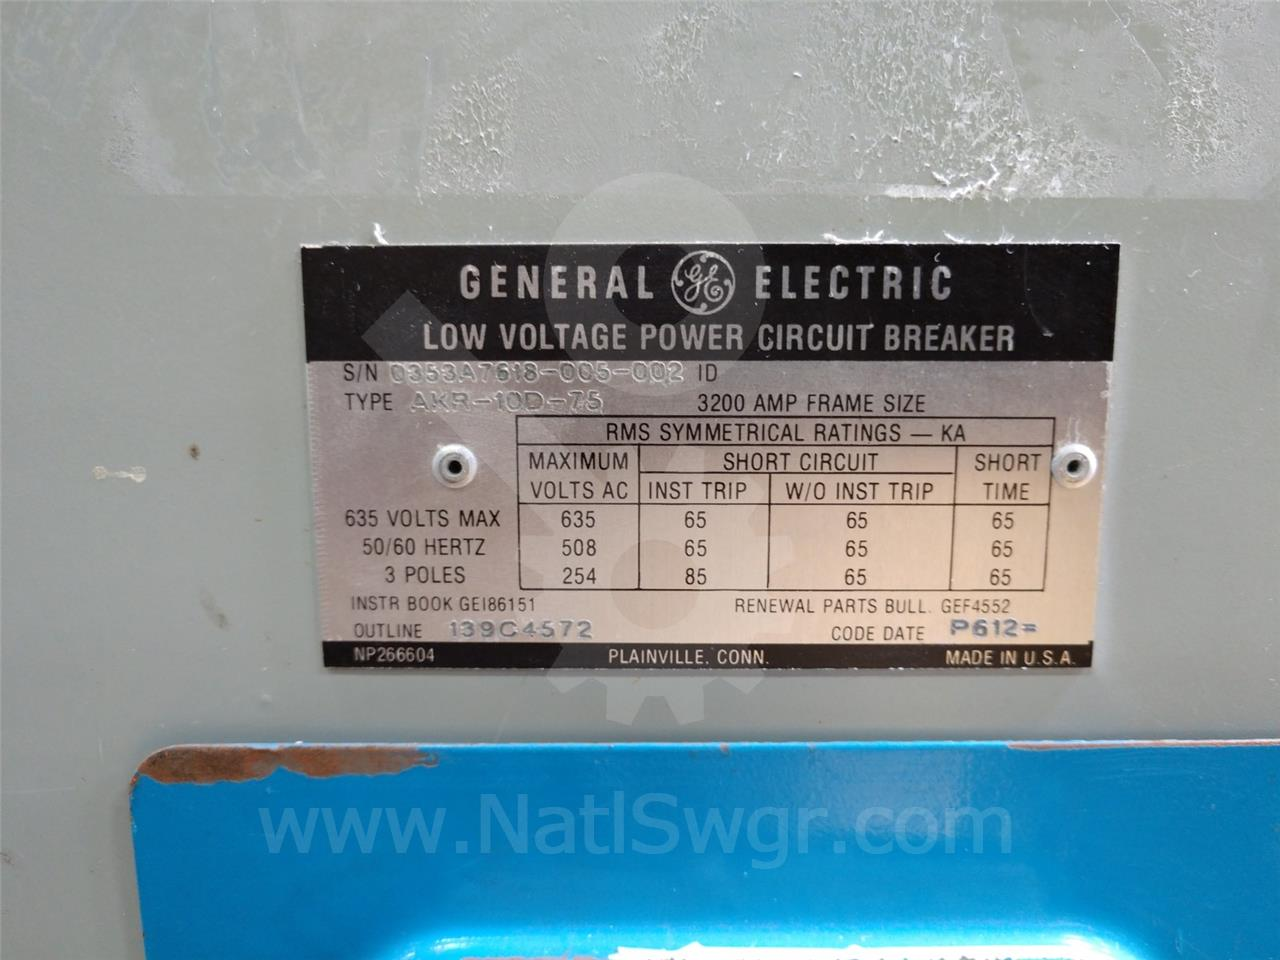 General Electric AKR-_D-75 3200A GE AKR-10D-75 MO/DO